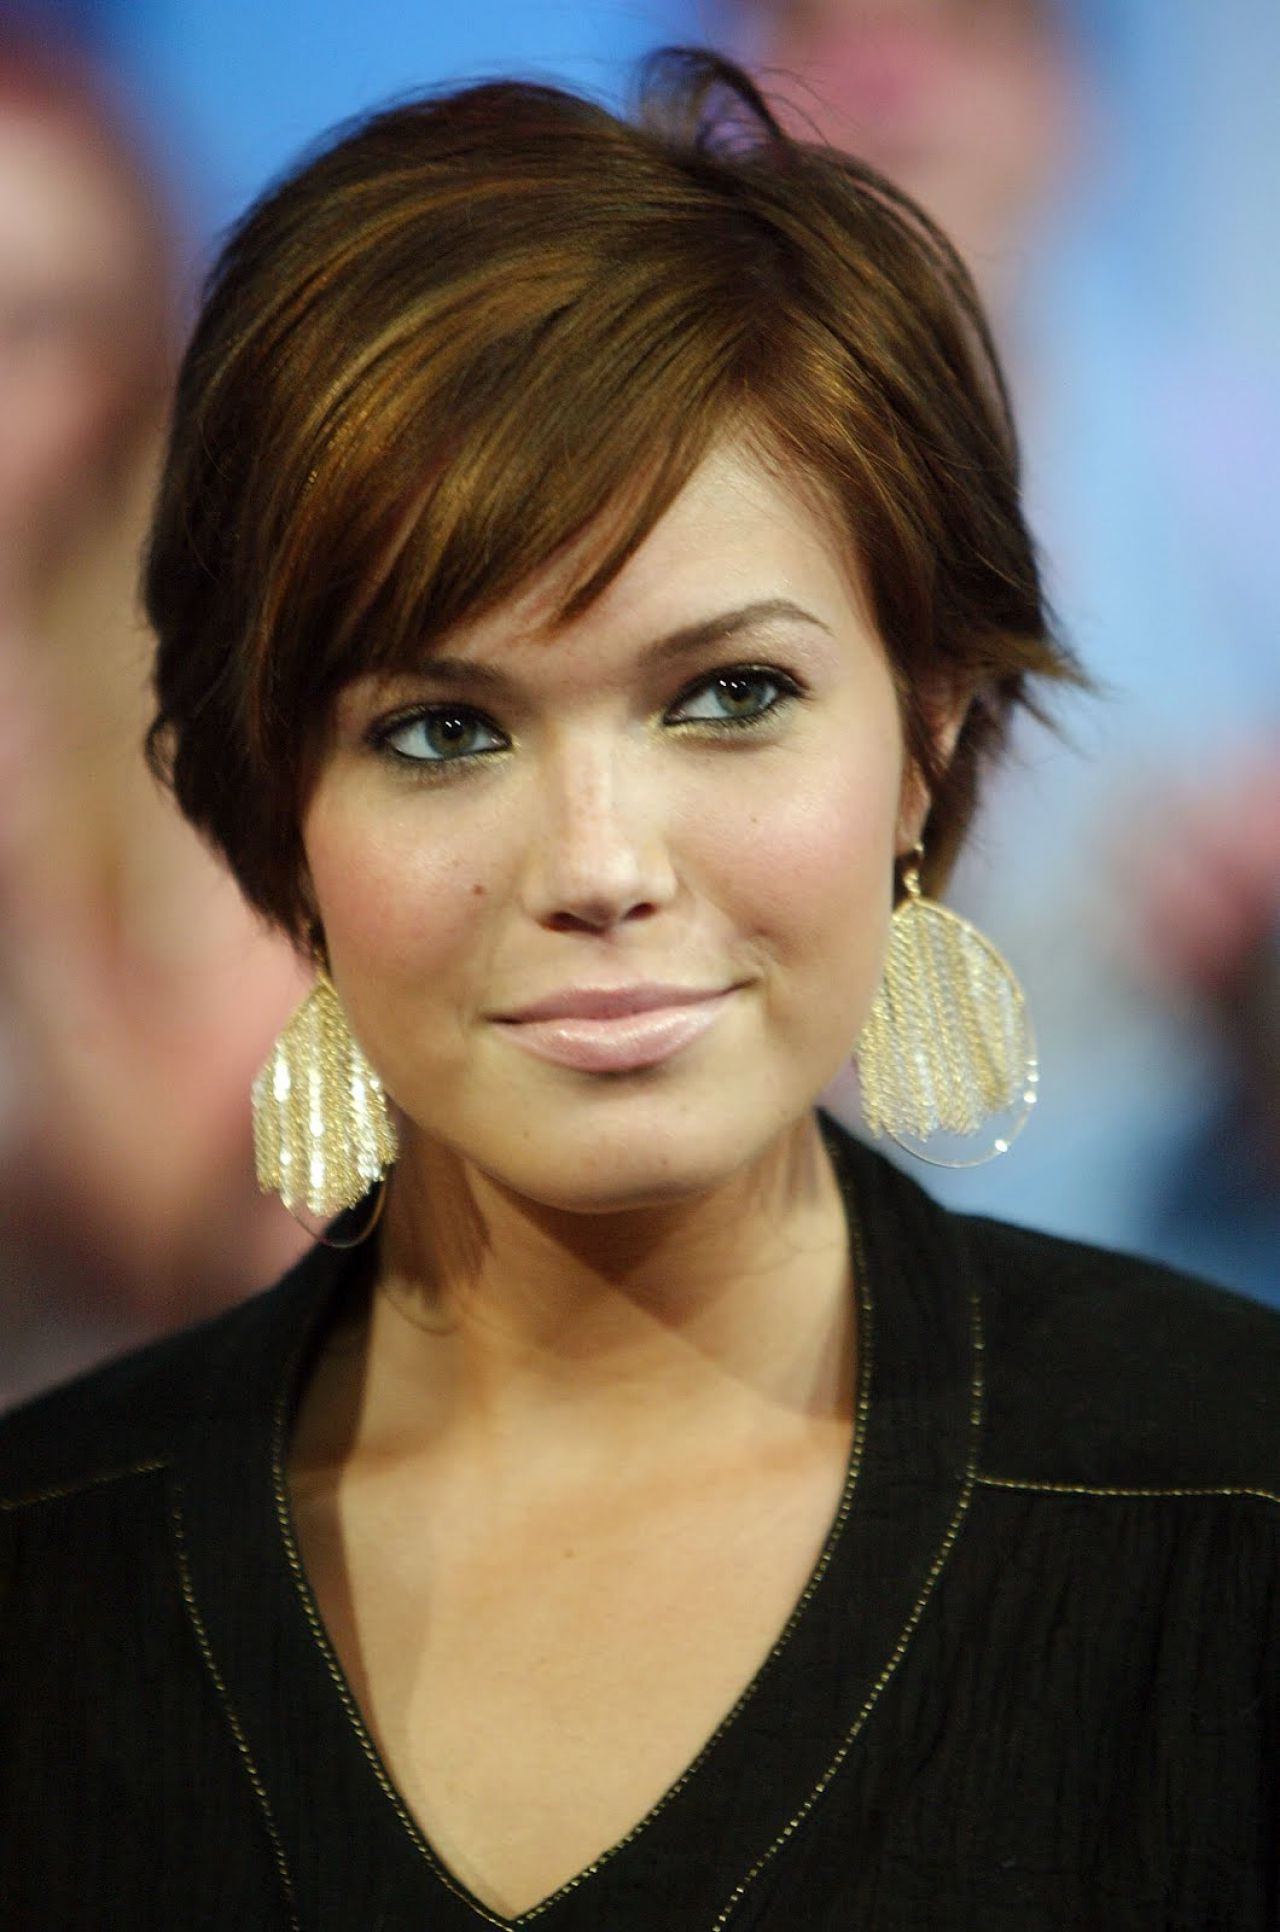 Short Hairstyles For Square Faces Female – Google Search Throughout Short Hairstyles For A Square Face (View 5 of 25)